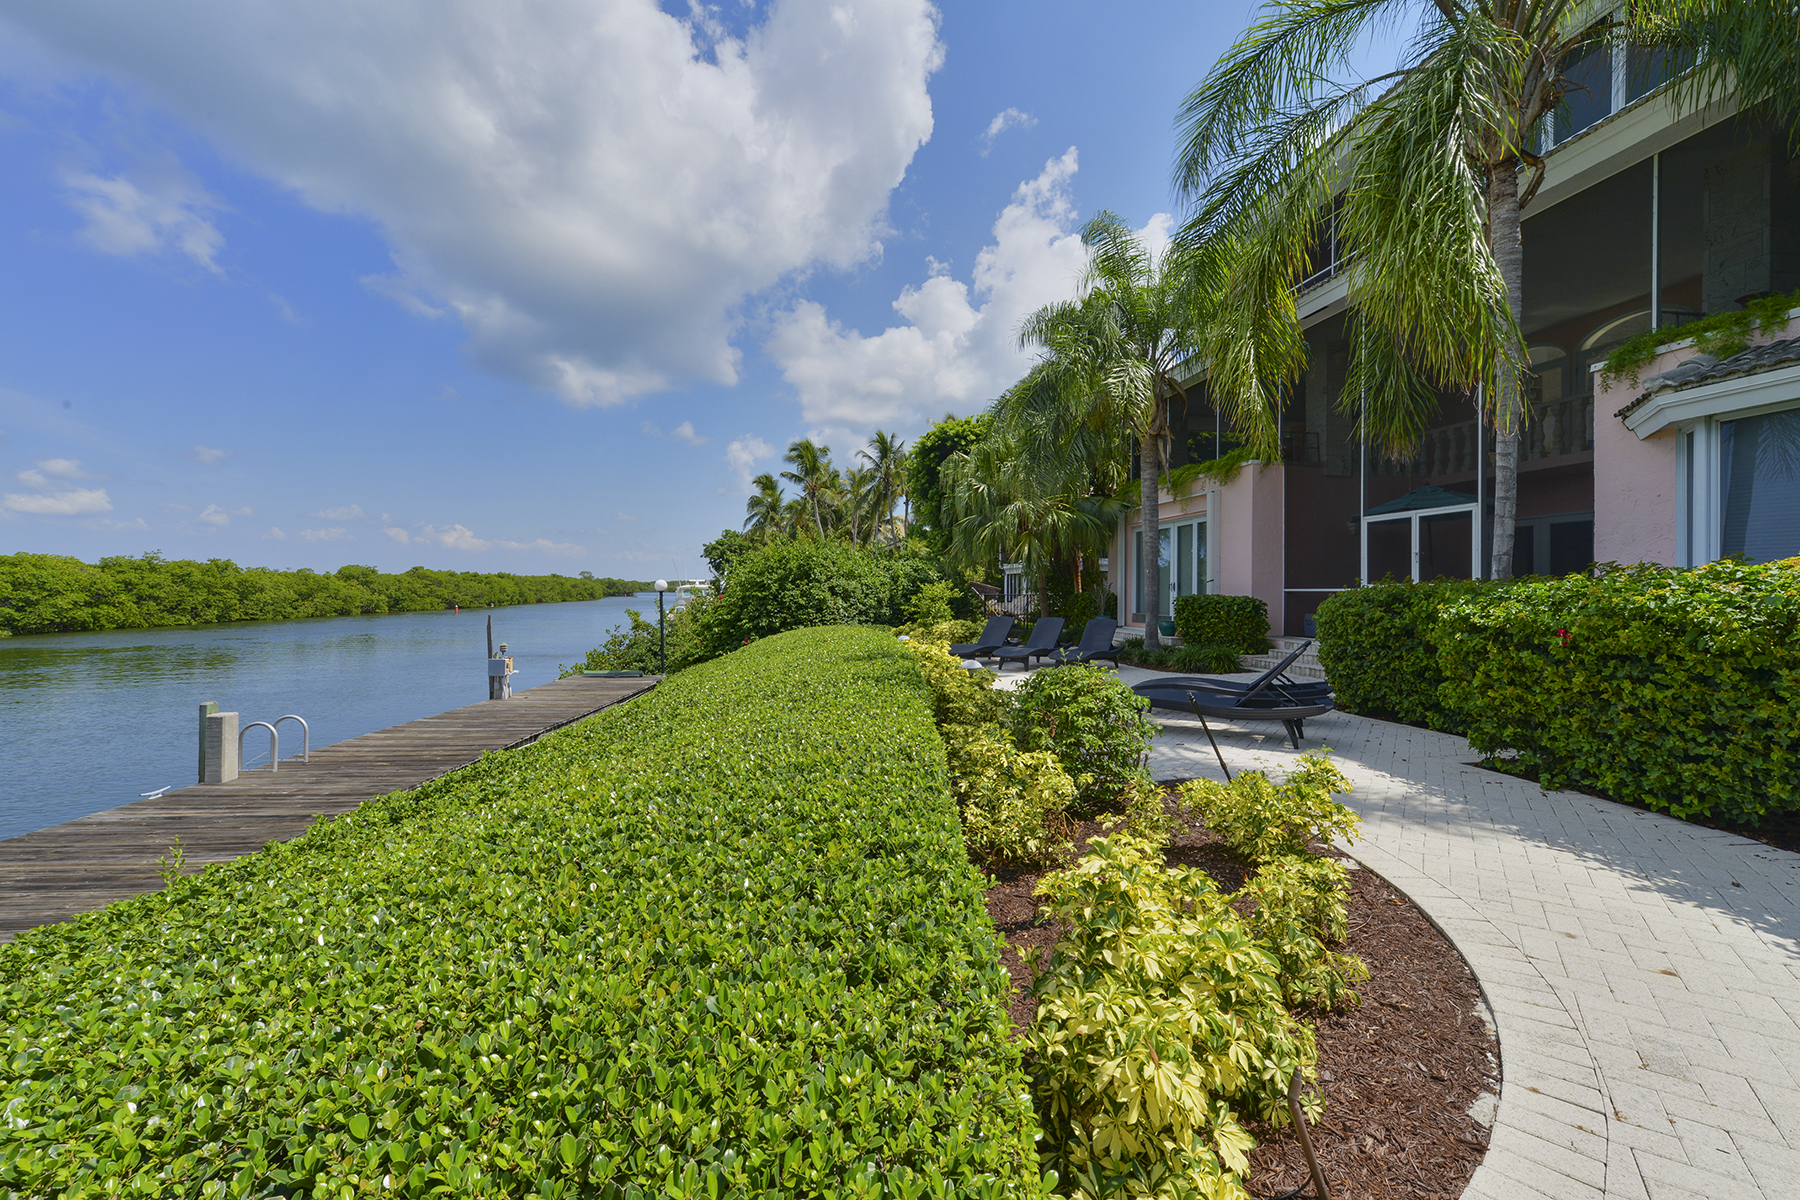 Single Family Homes for Sale at 30 Cardinal Lane, #0, Key Largo, FL 30 Cardinal Lane Key Largo, Florida 33037 United States